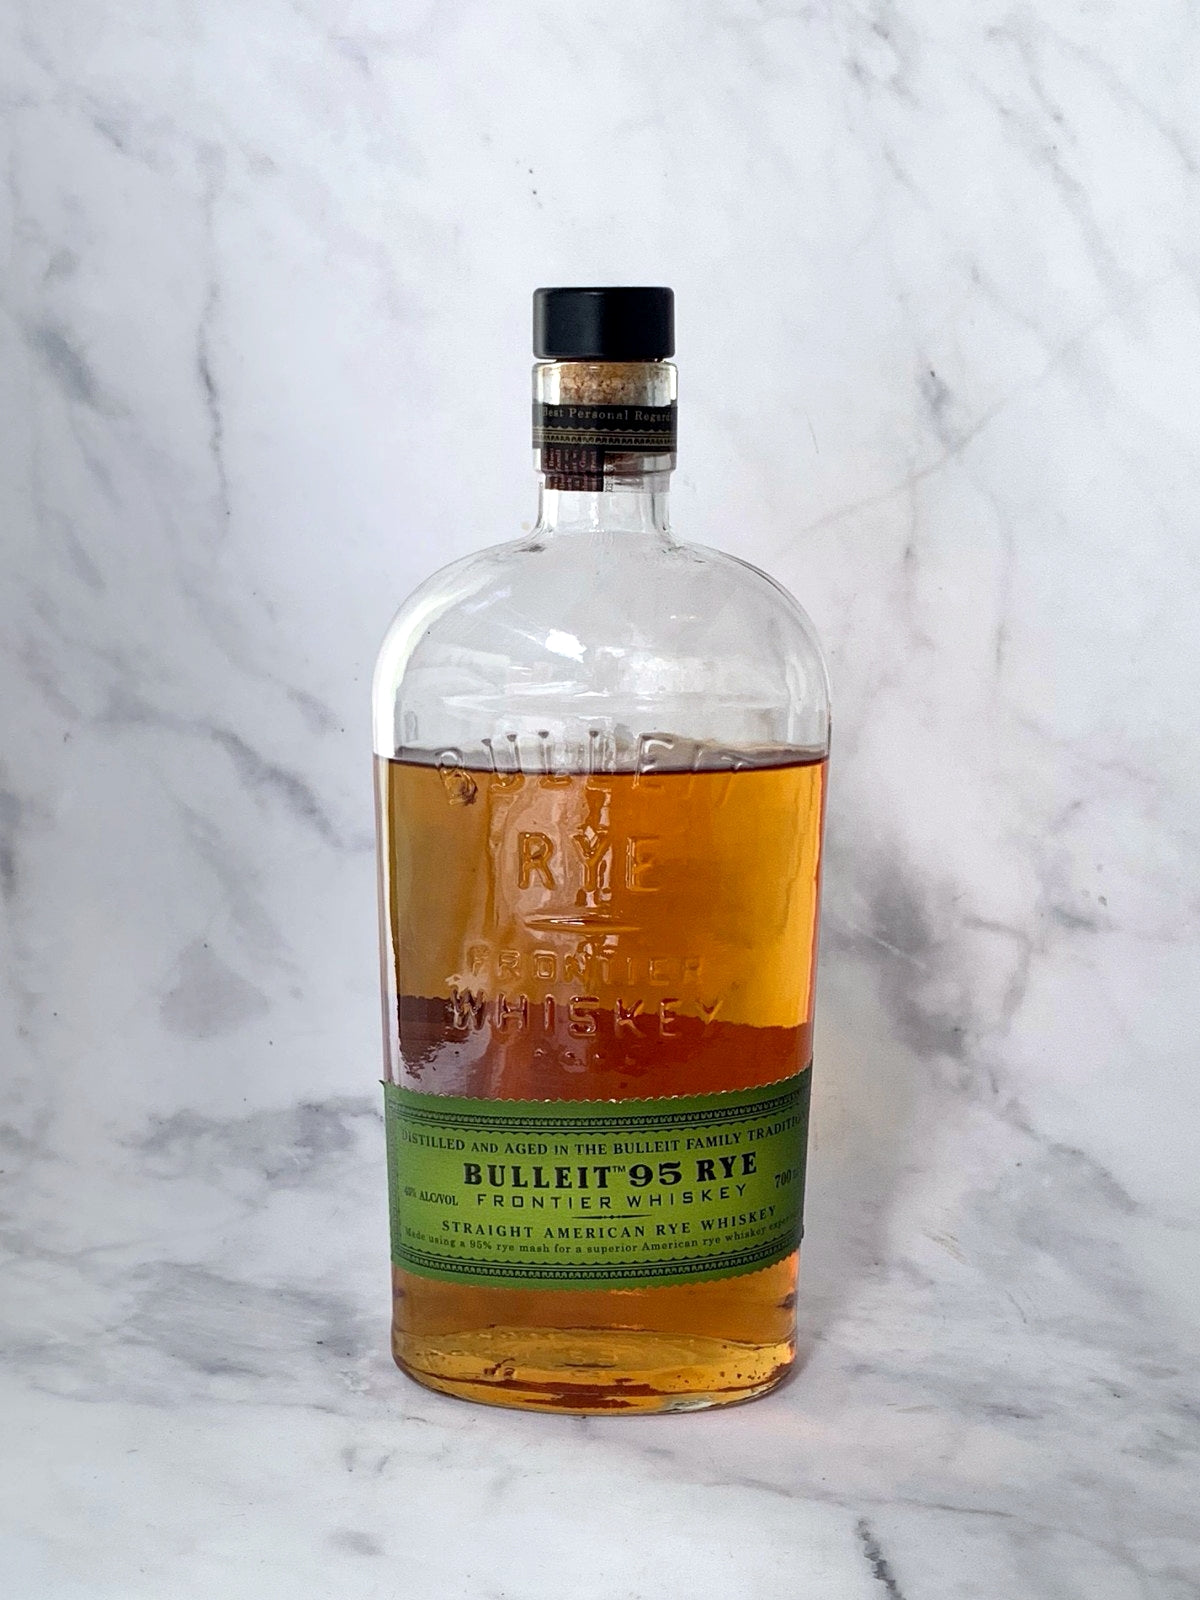 Bulleit Rye Whiskey (50ml serve)